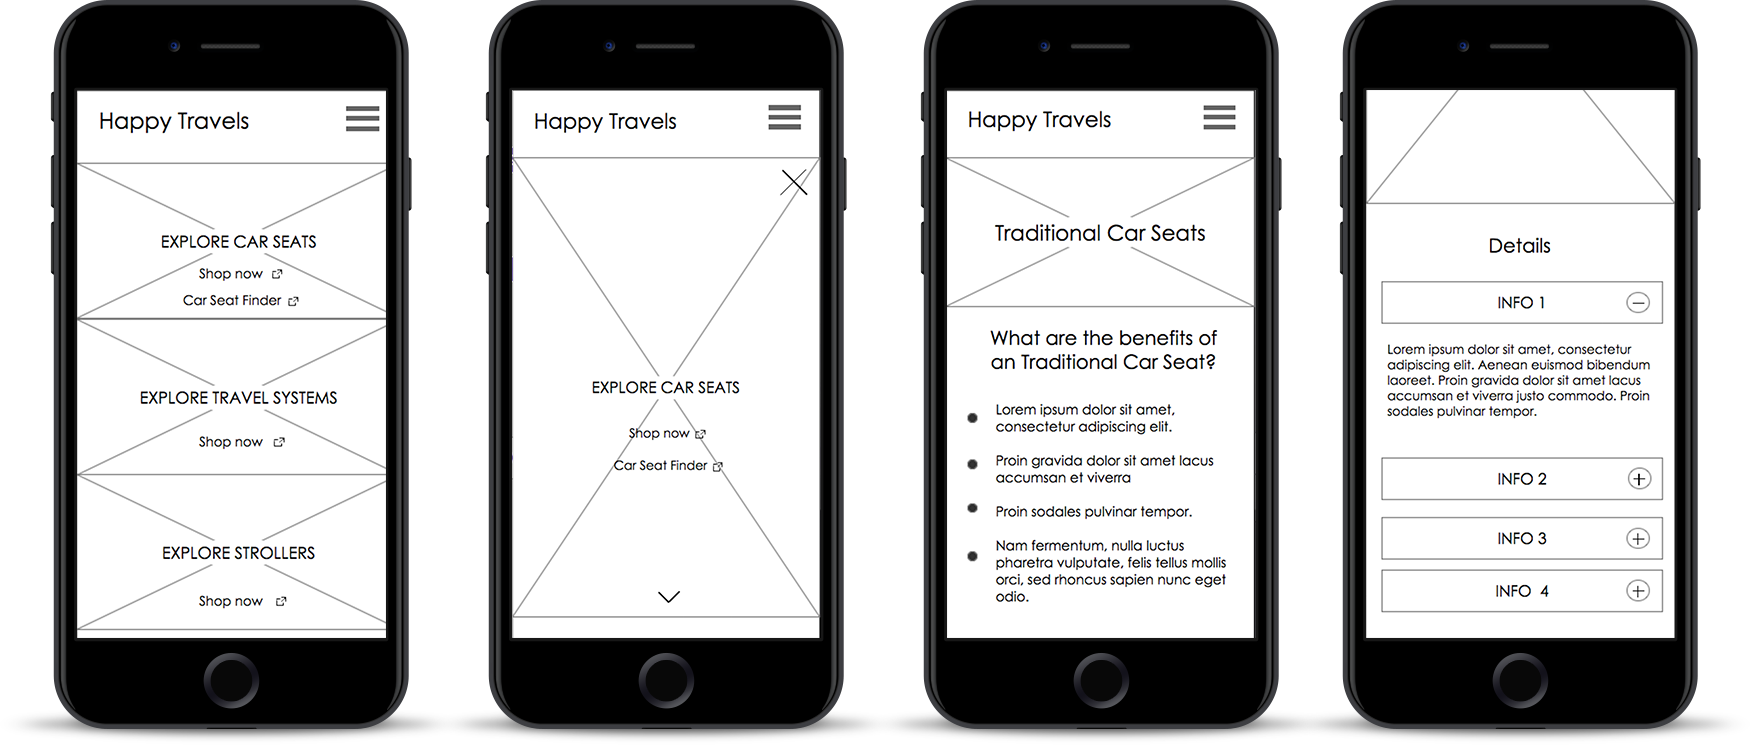 Happy Travels wireframe mobile